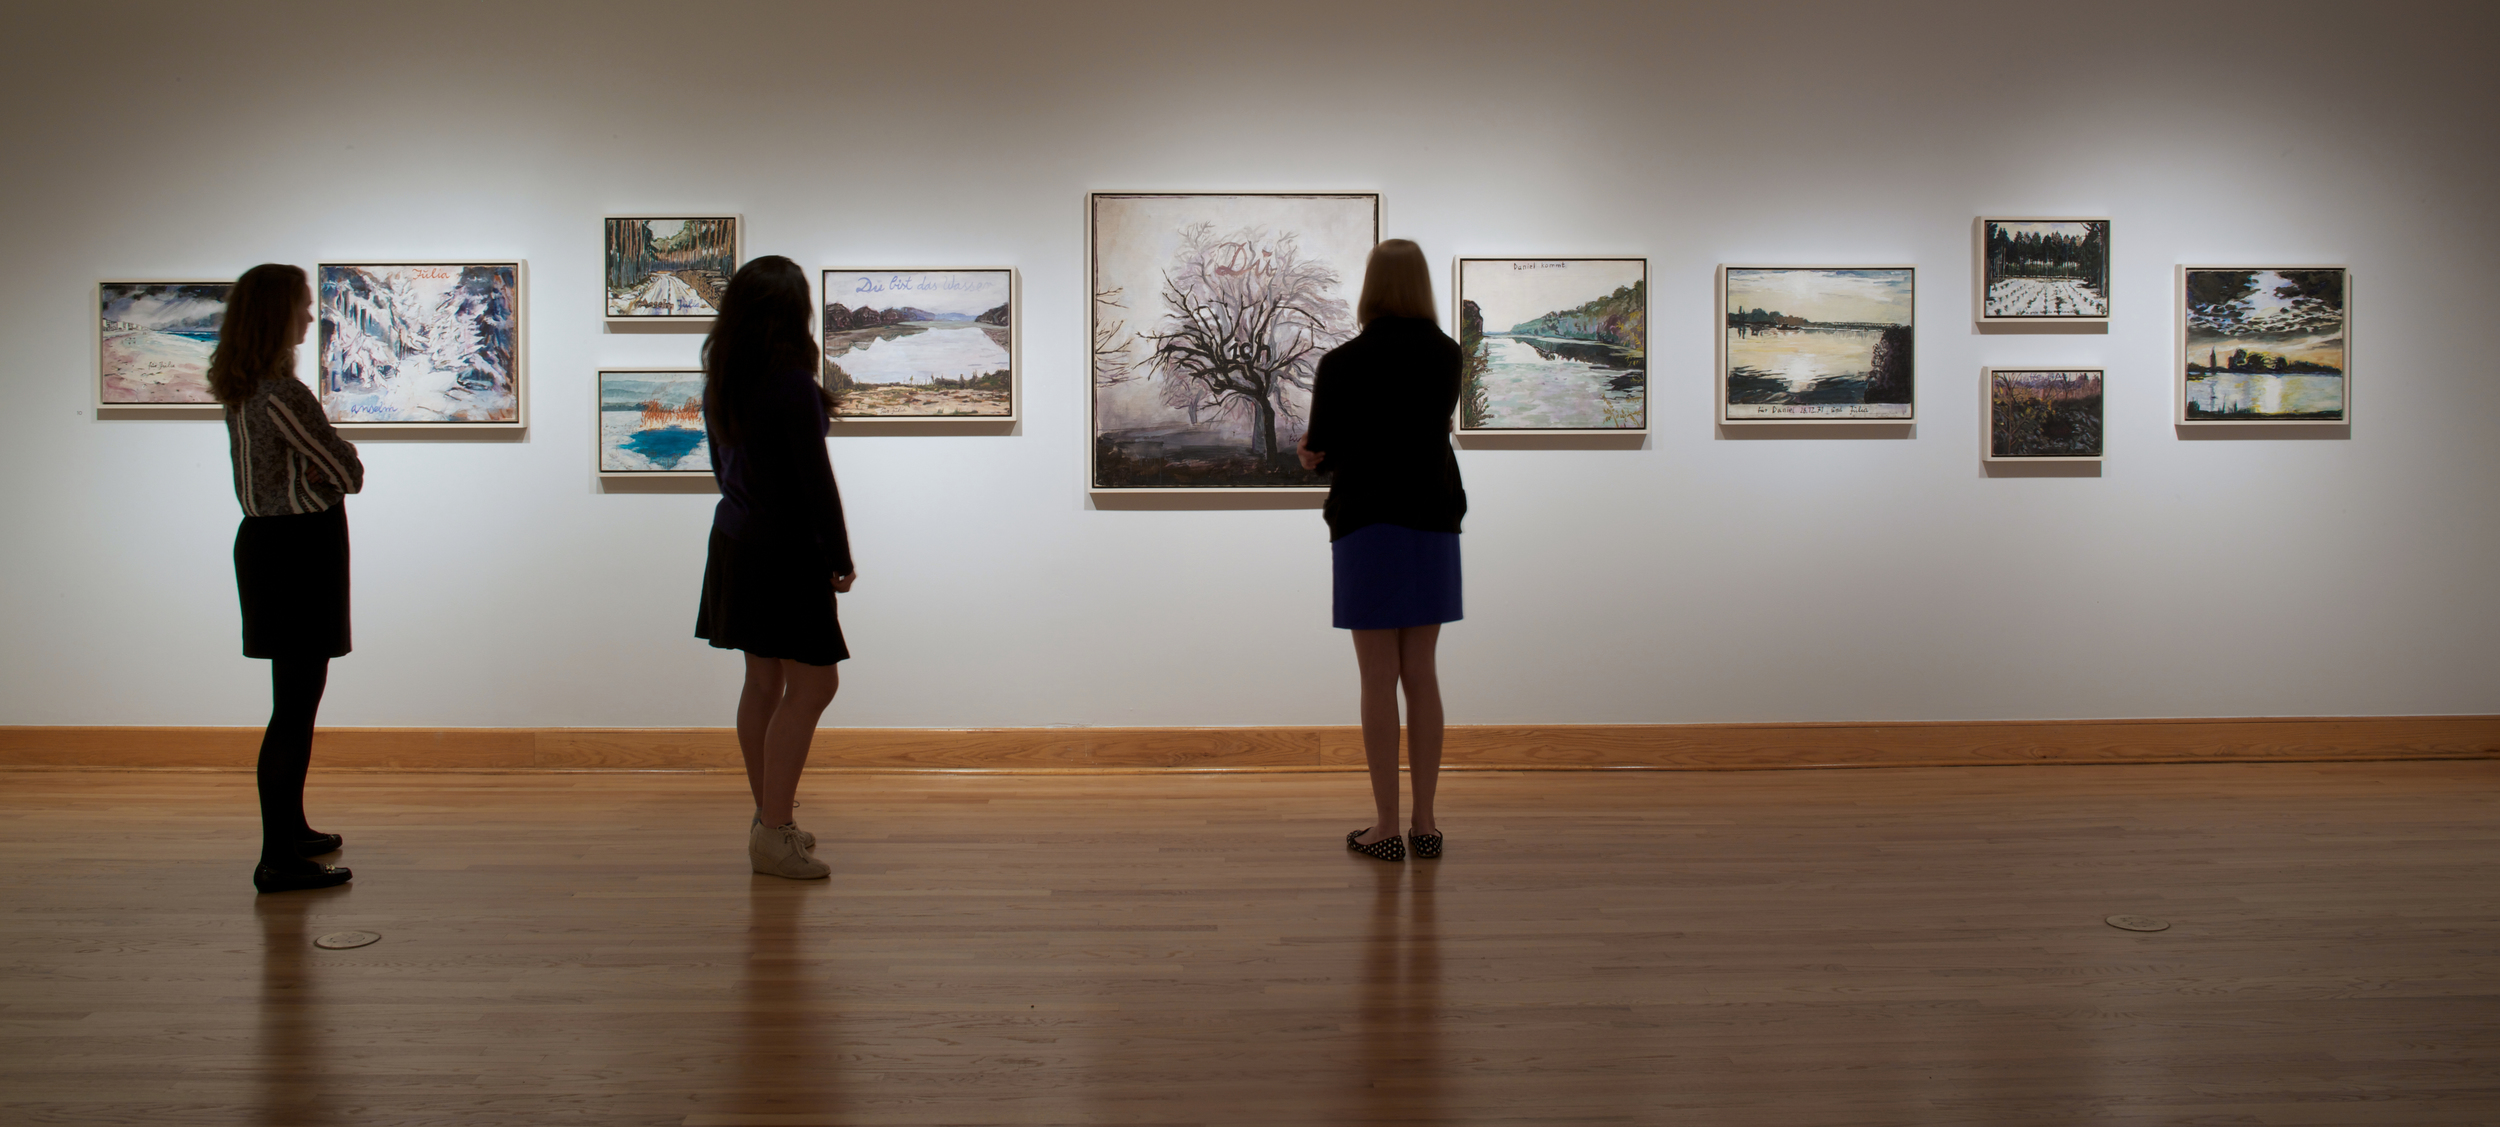 2013_WCMA_Anselm_Kiefer_Hall_Art_Foundation 011.jpg